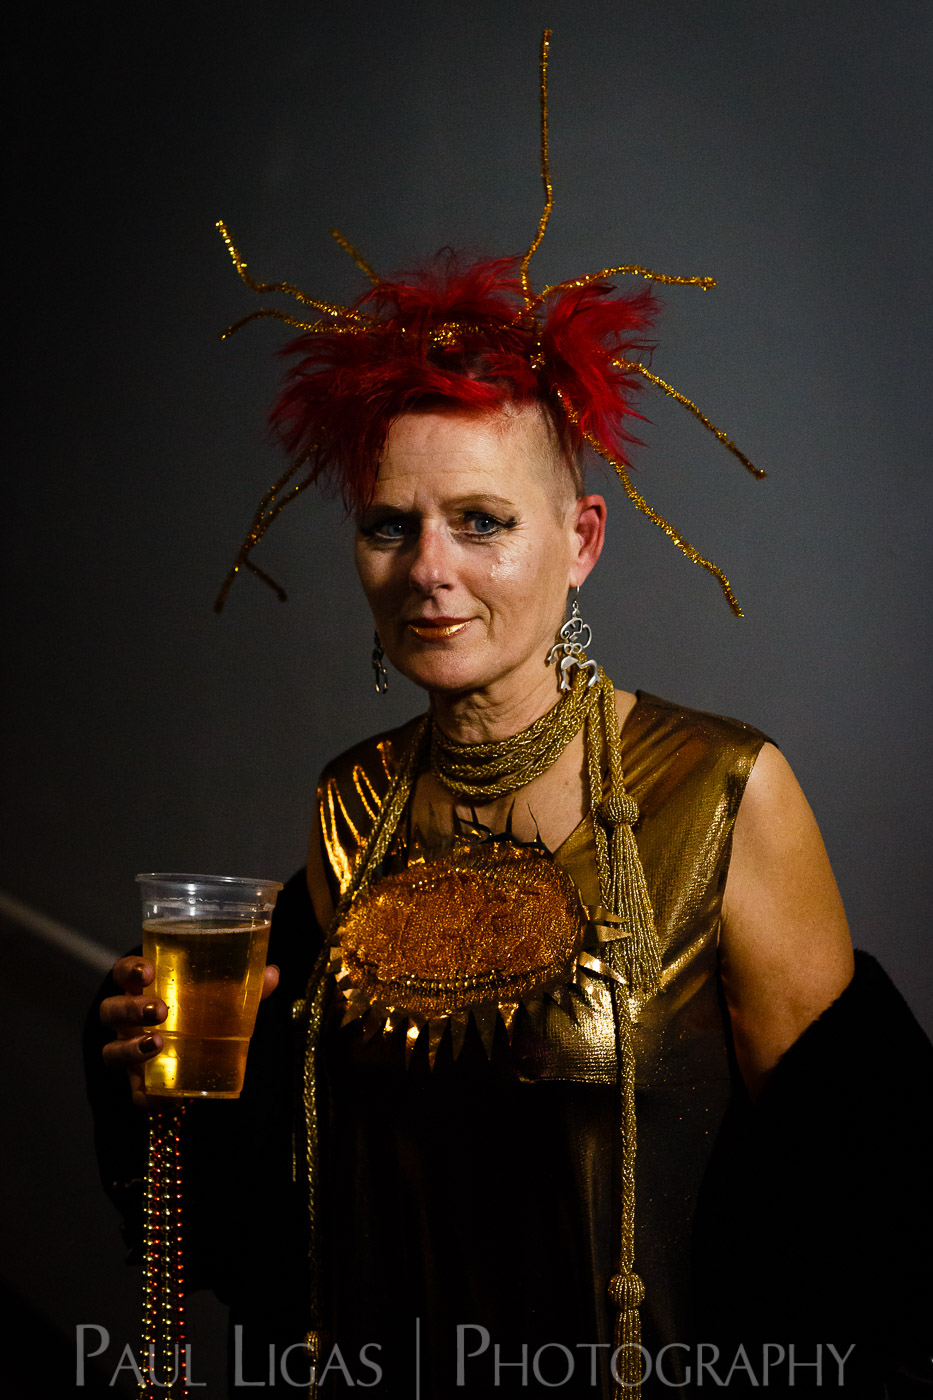 steampunk yule ball 2019 event photographer music concert portrait herefordshire photography-1873